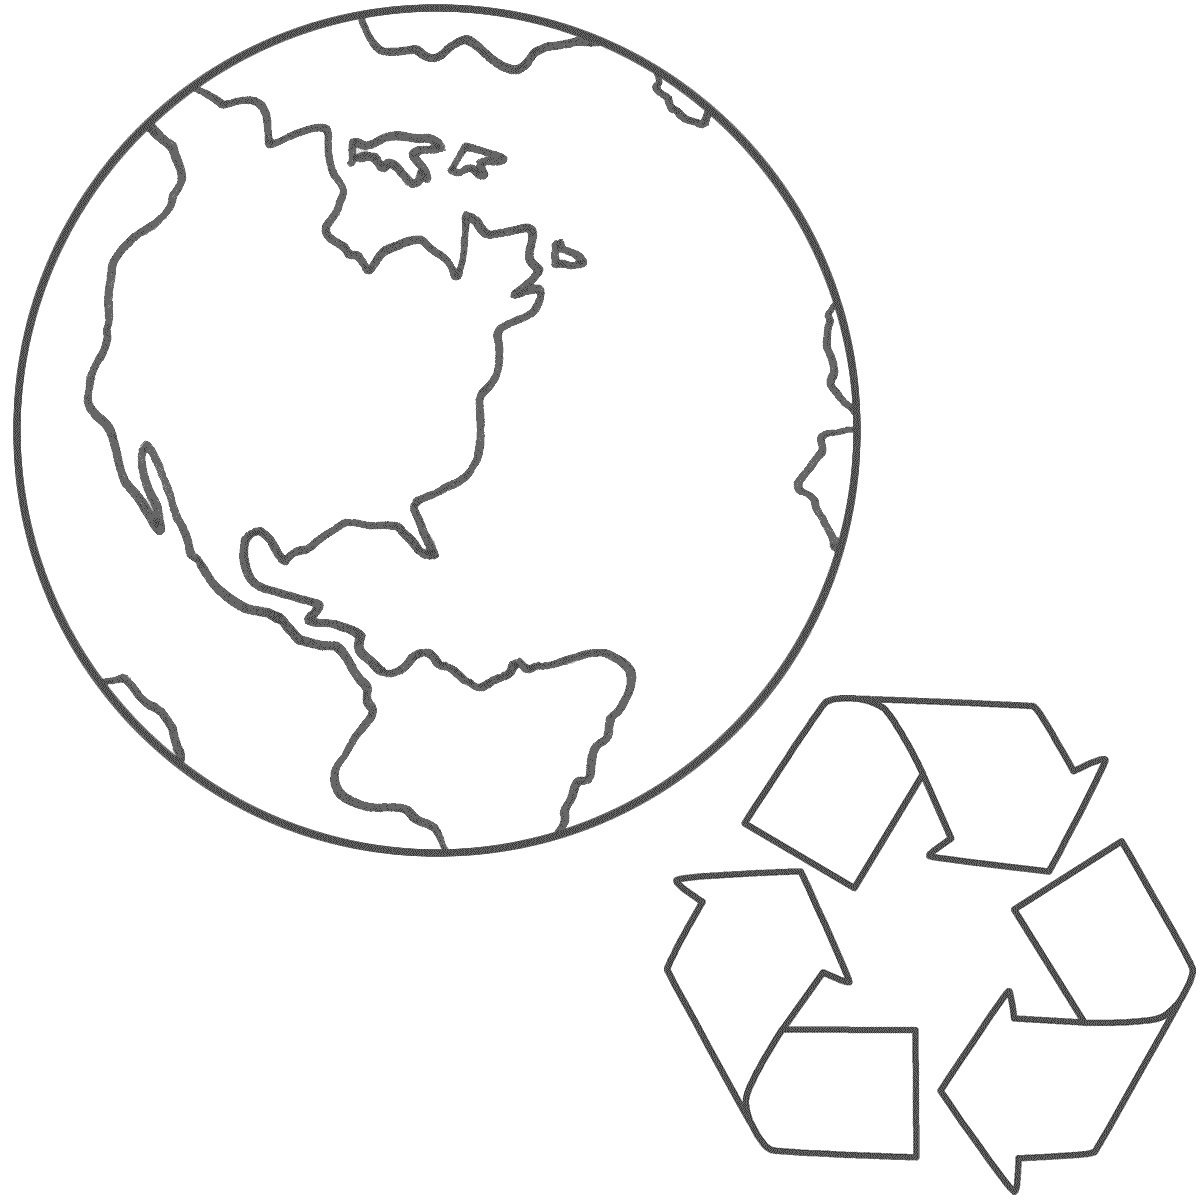 coloring page earth free printable earth coloring pages for kids coloring page earth